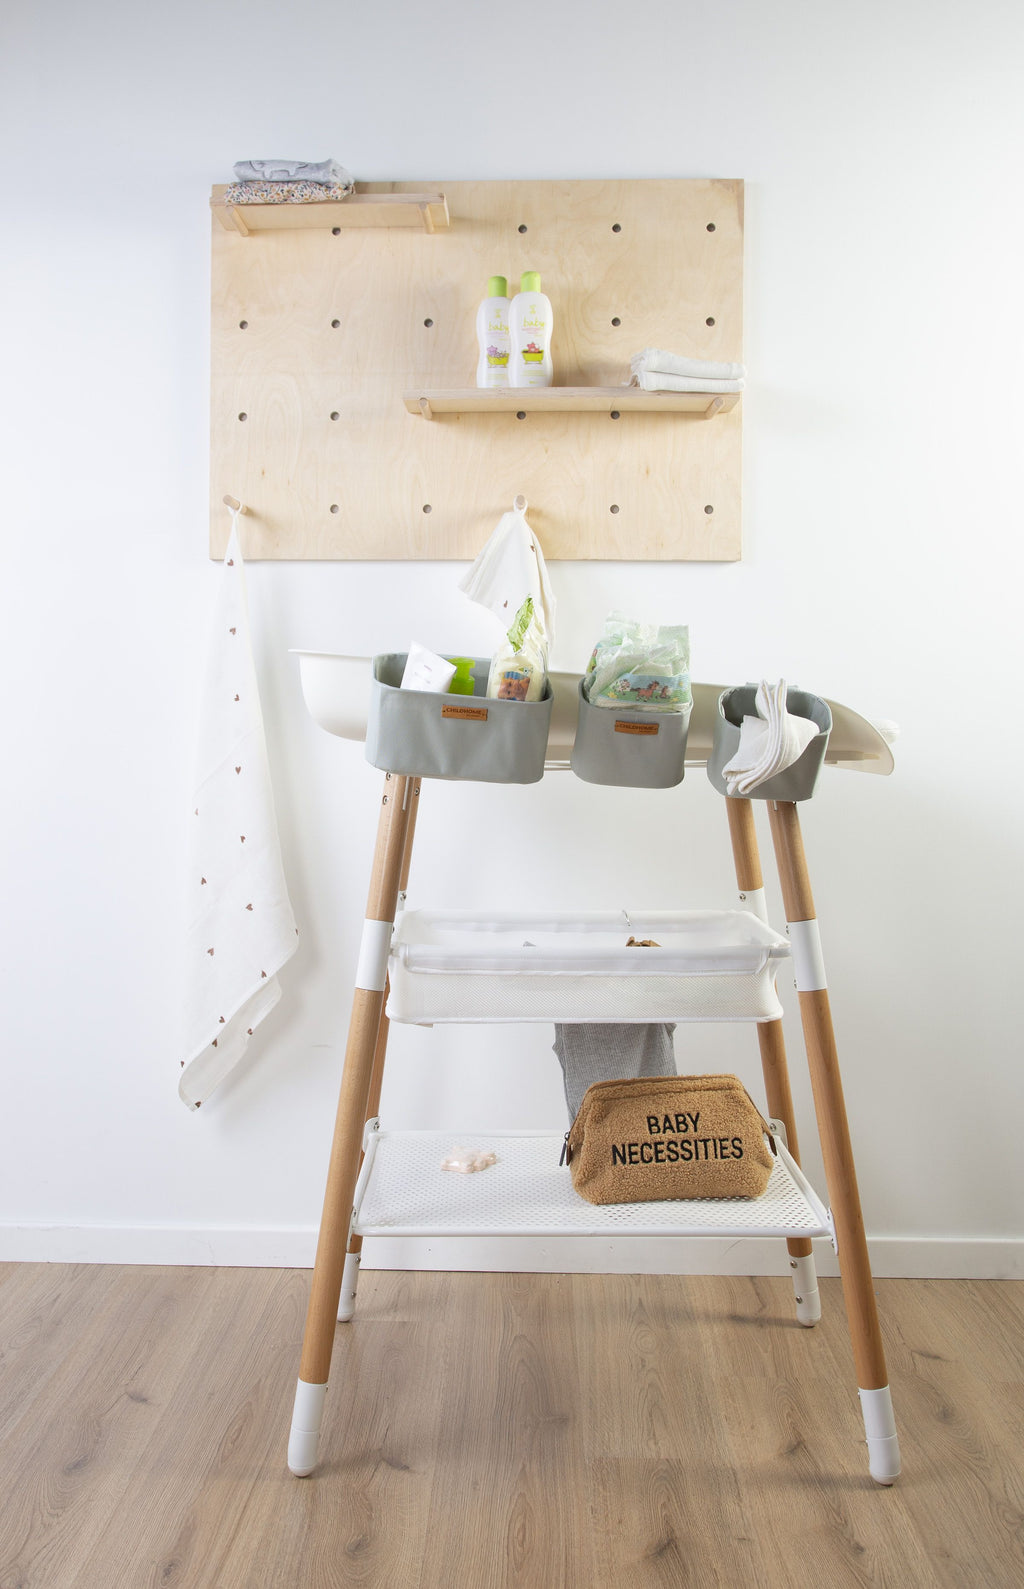 Childhome Hangmandjes Commode Grijs